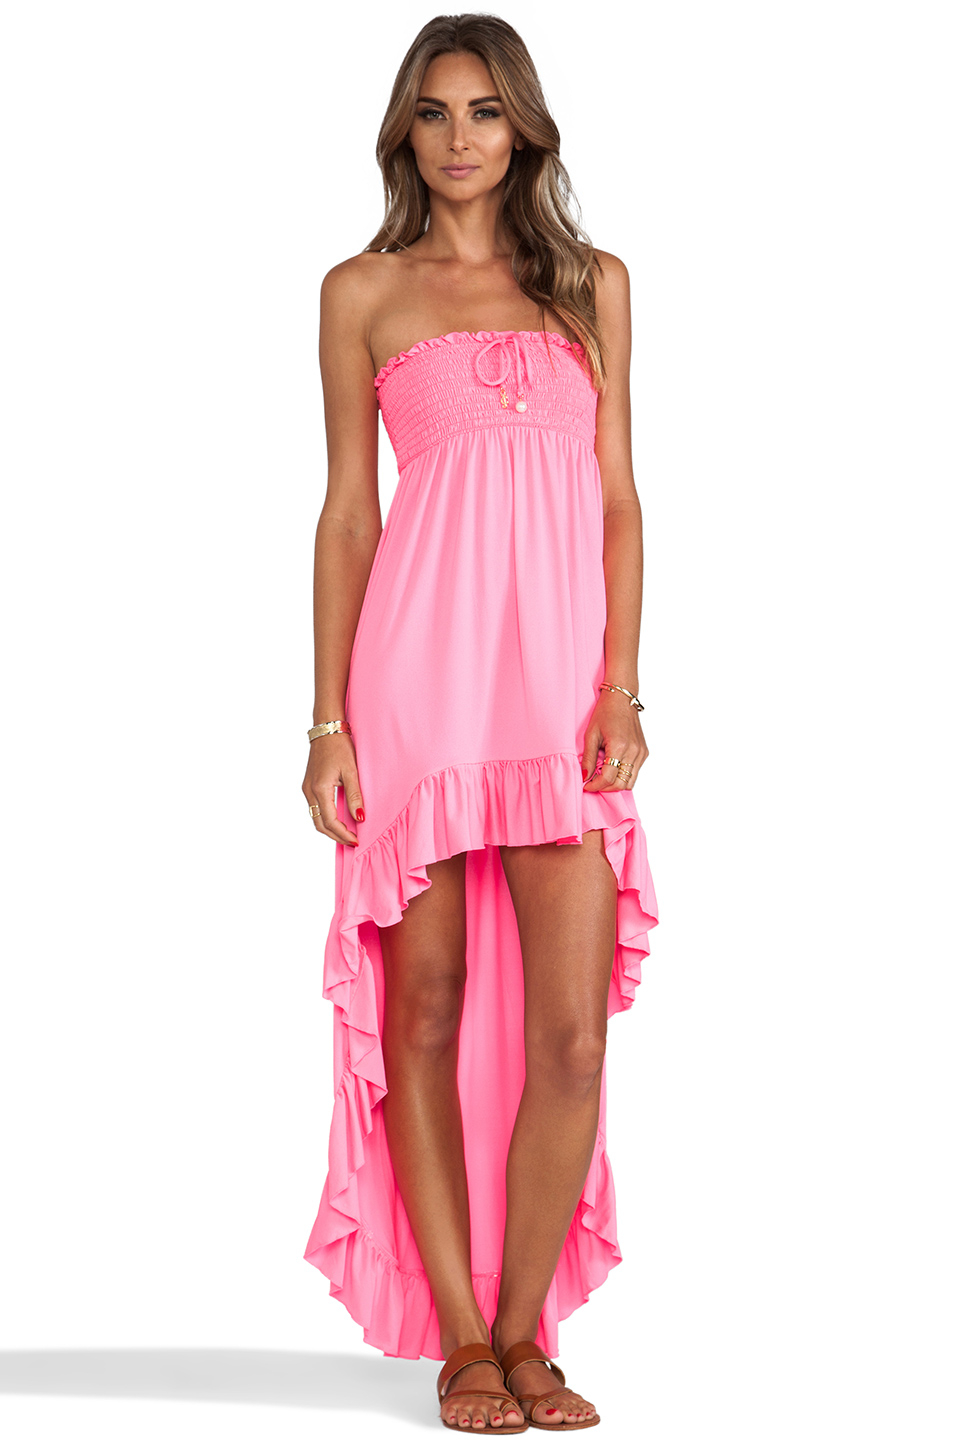 Lyst juicy couture bow chic high low cover up dress in pink for High couture clothing